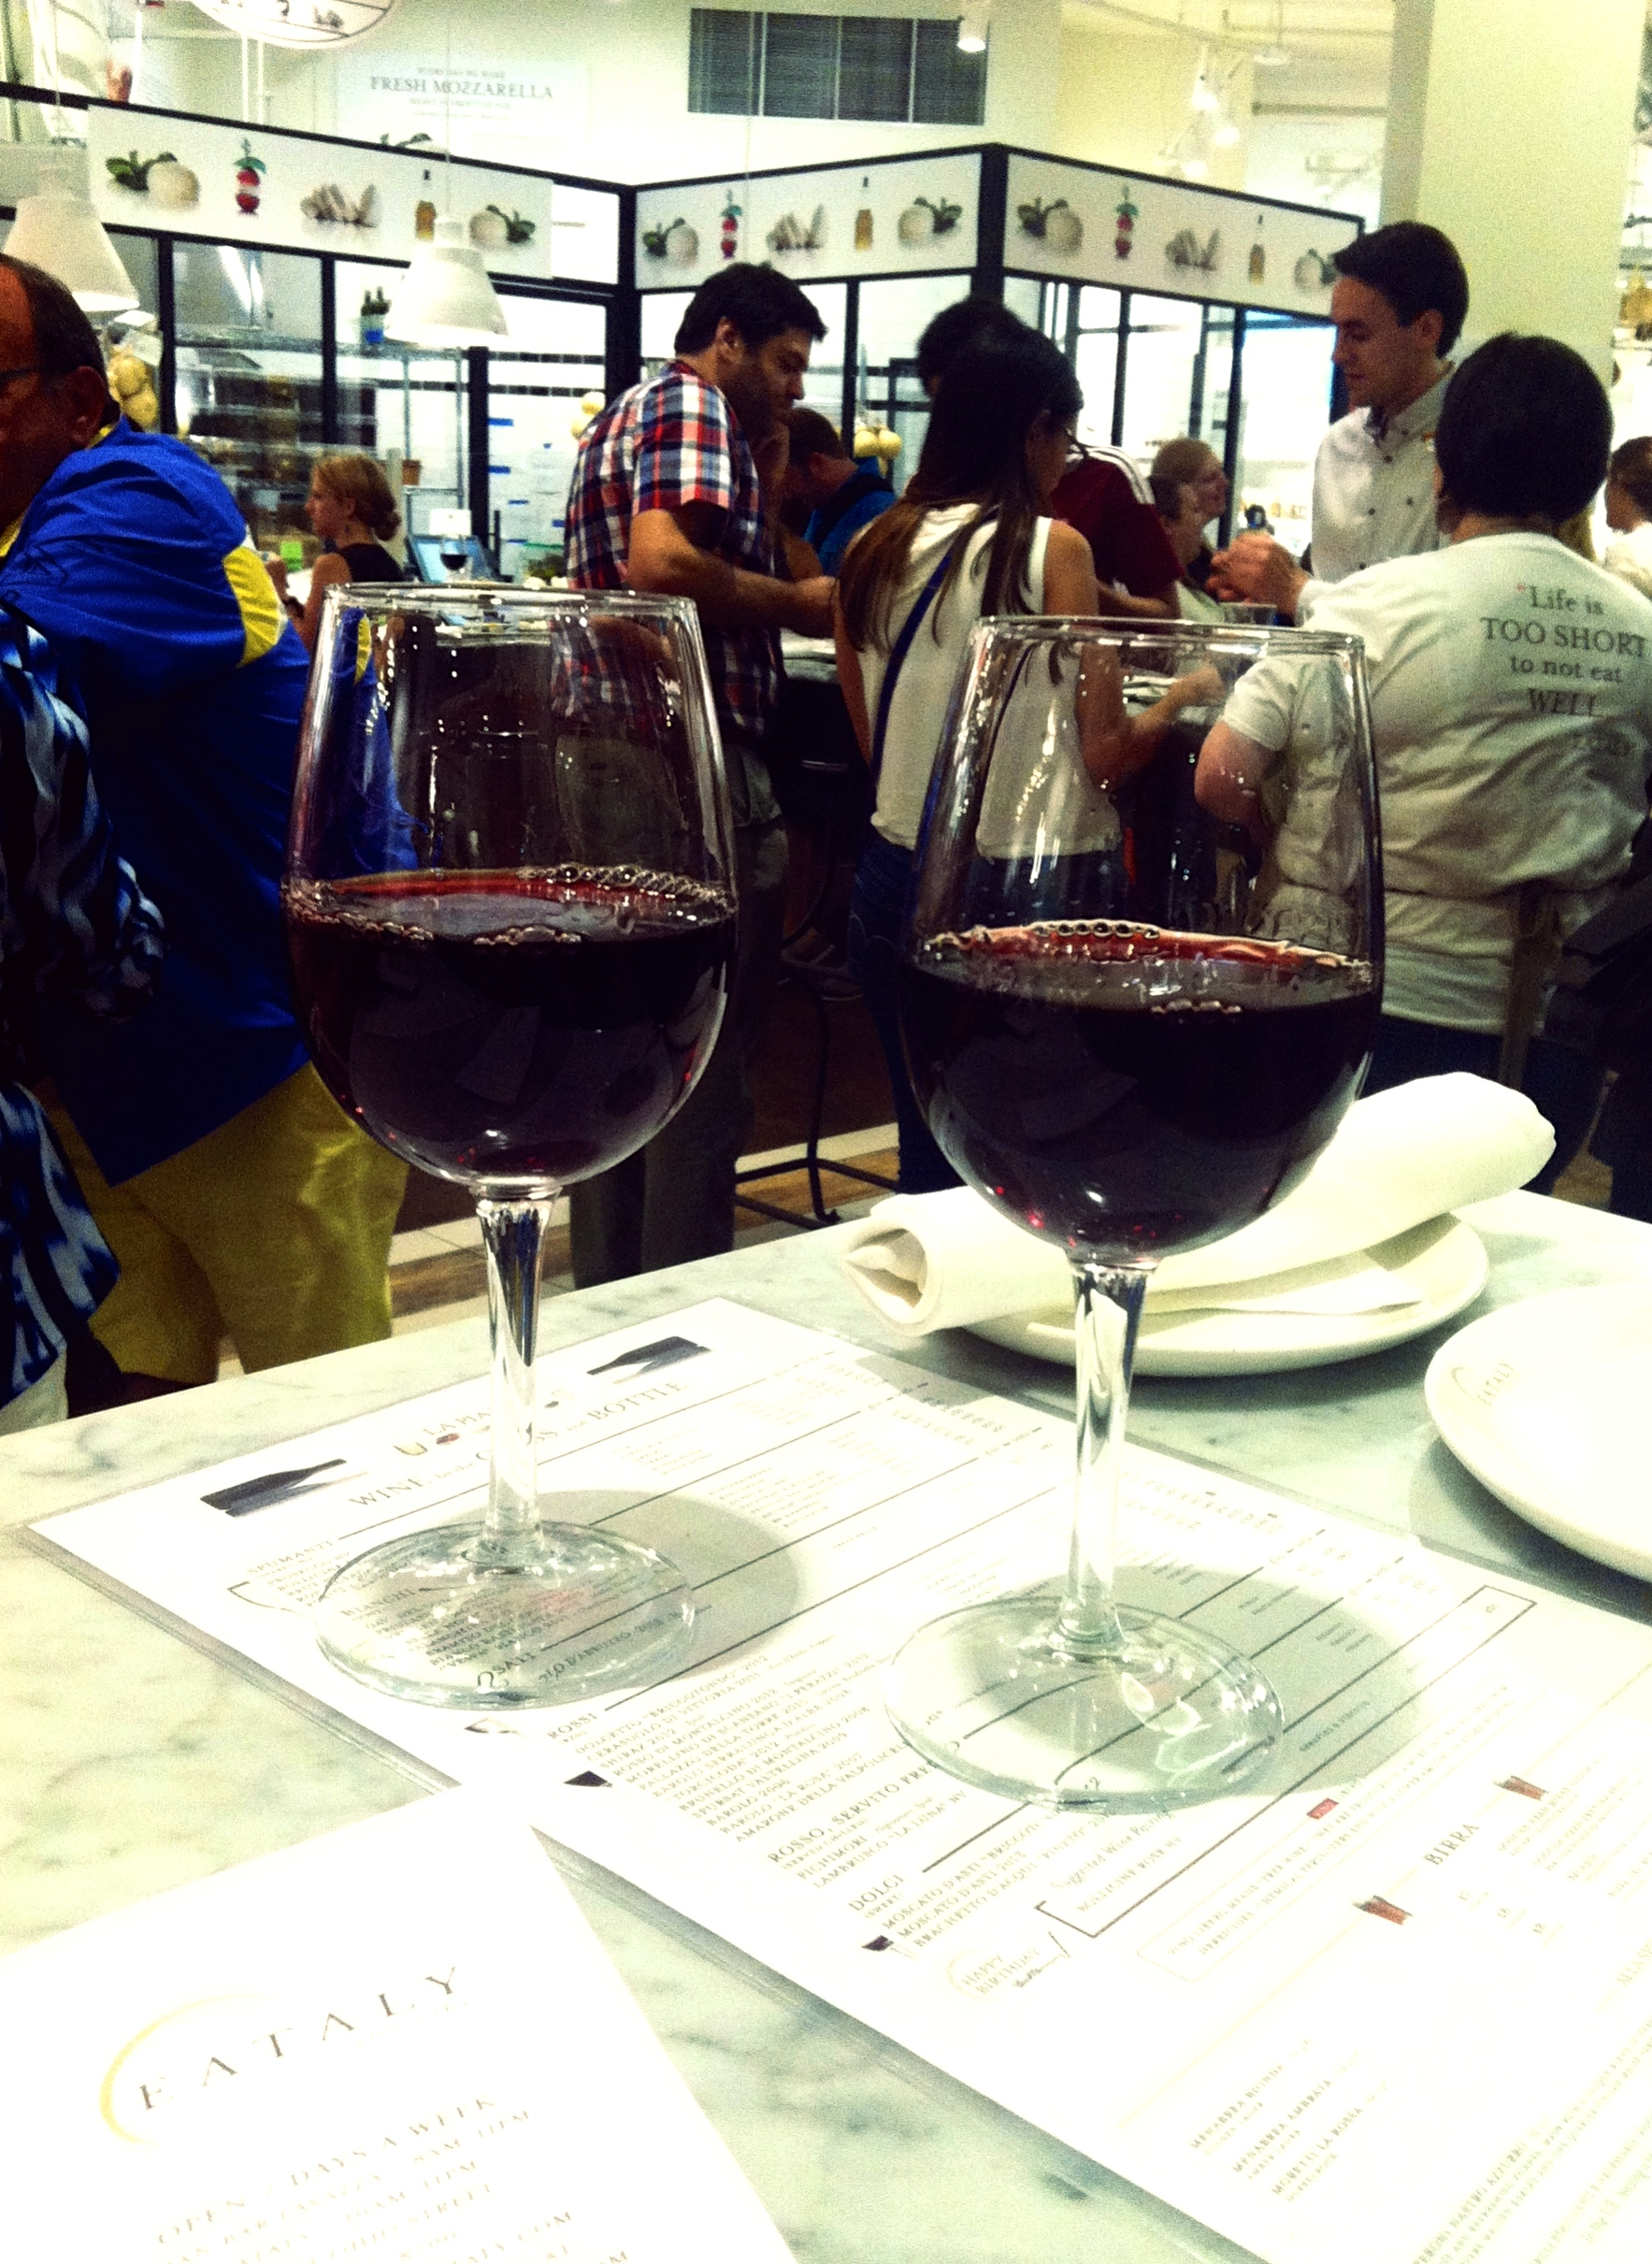 two eataly glasses